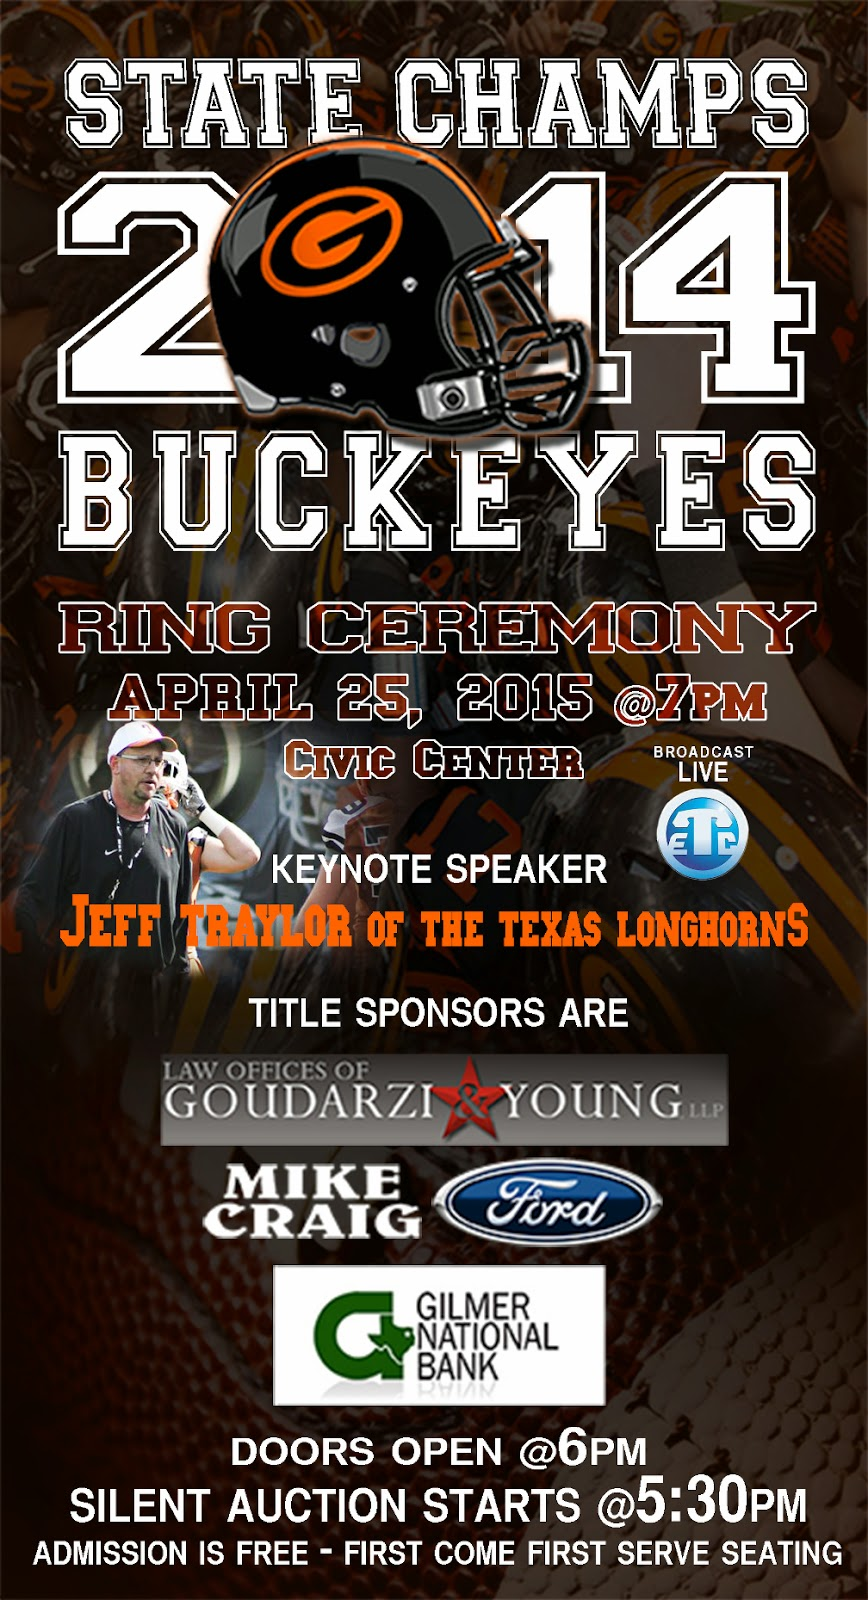 Gilmer Buckeyes Ring Ceremony to be on Saturday, April 25